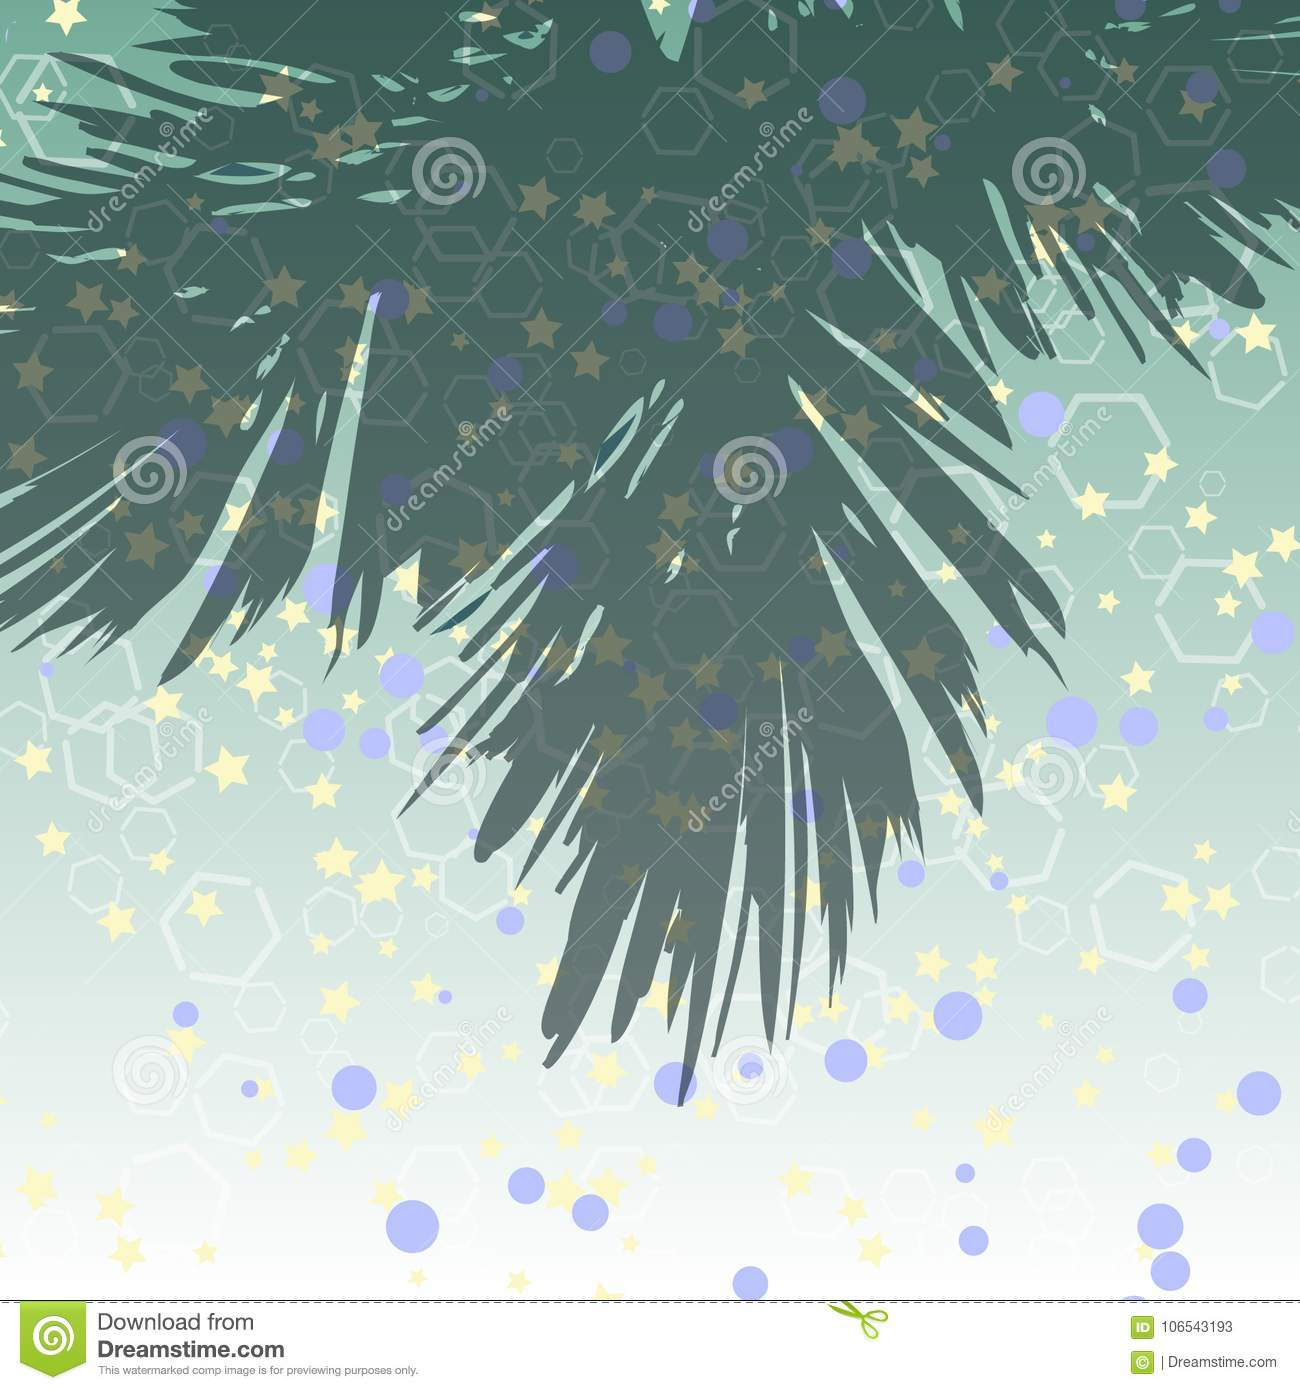 Abstract colorful background with with stars, circles and hexahedrons and a branch of a Christmas tree